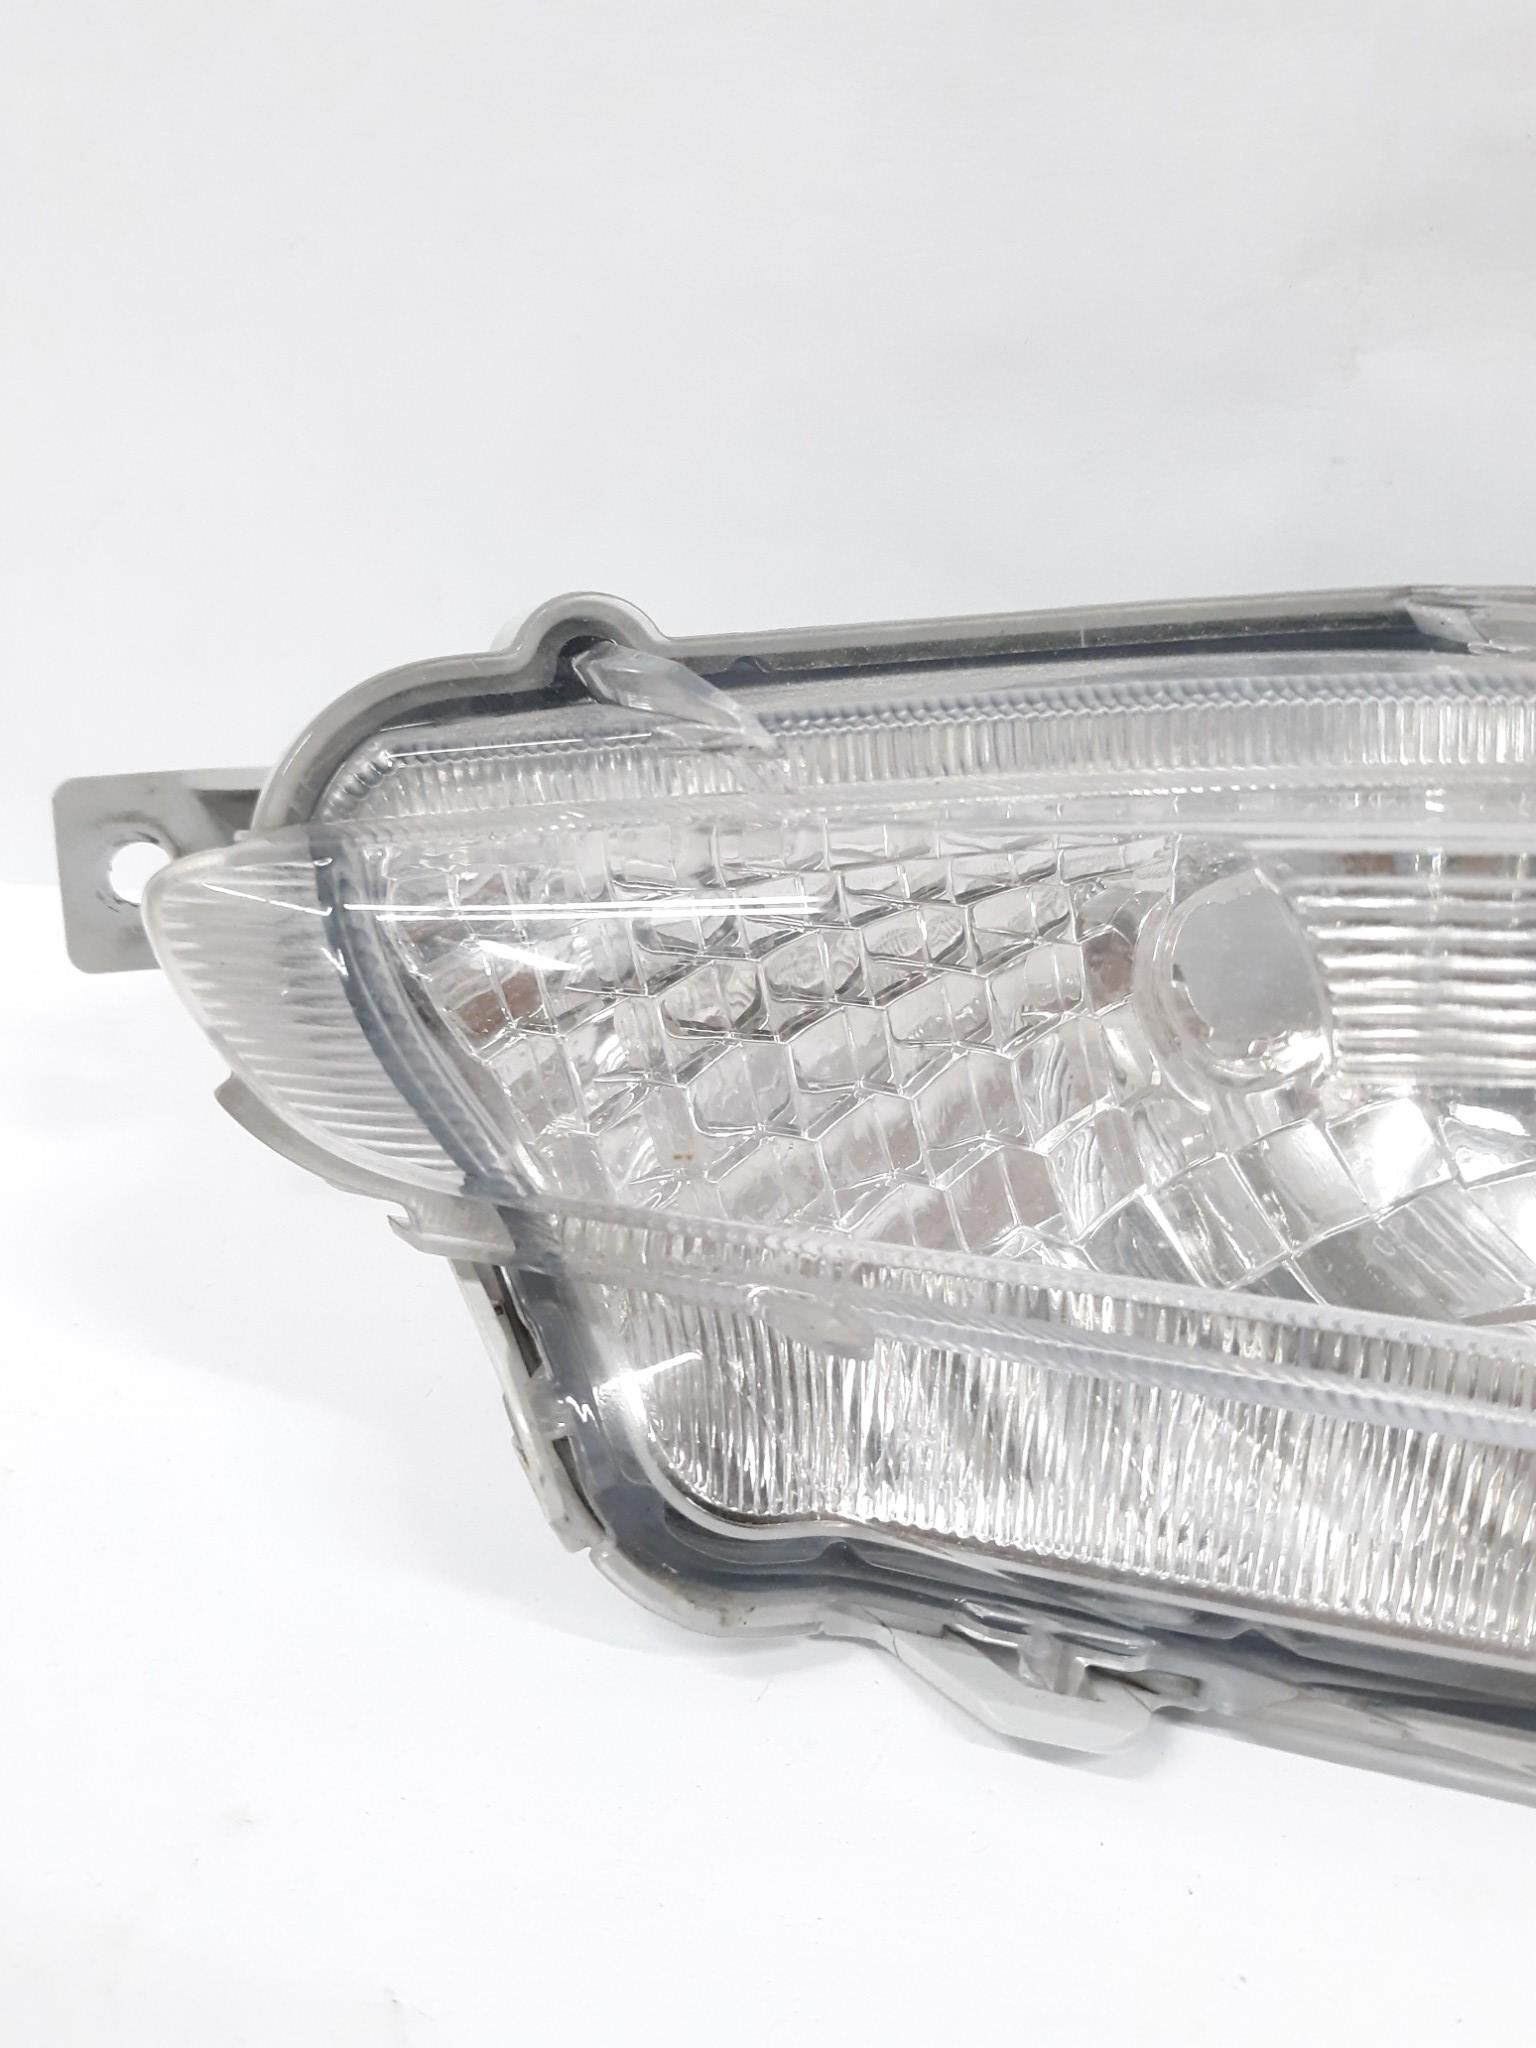 2015 2016 2017 Toyota Camry OEM Right side Foglight # NAL 945 233